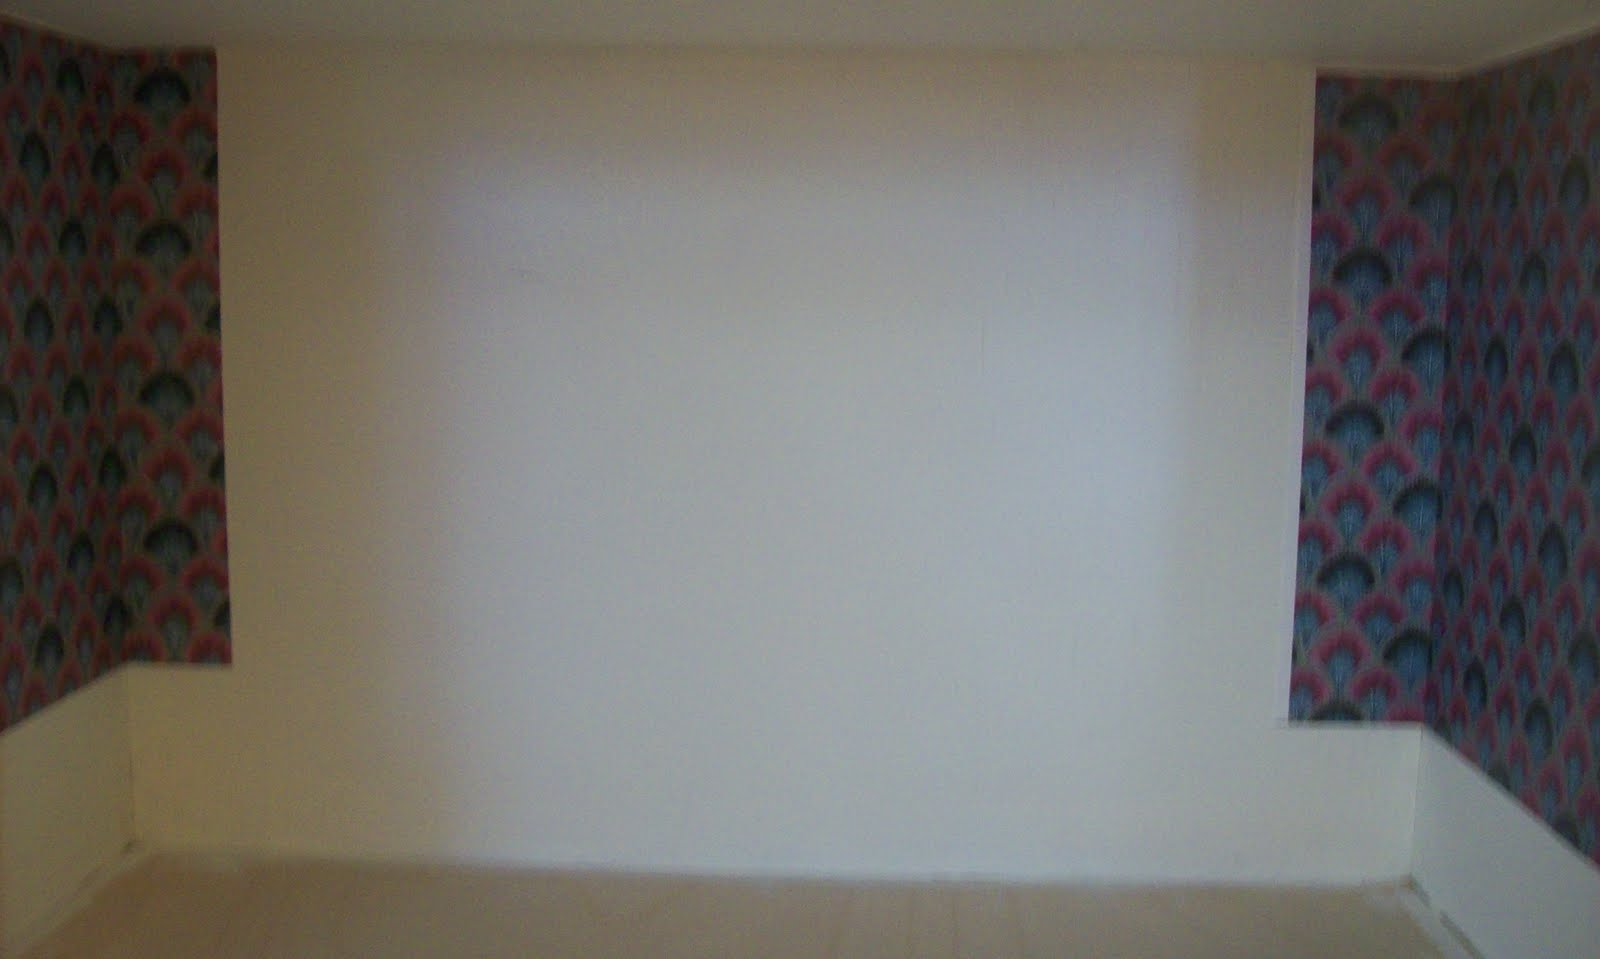 StAlbertMini wallpaper and crown molding up 1600x959